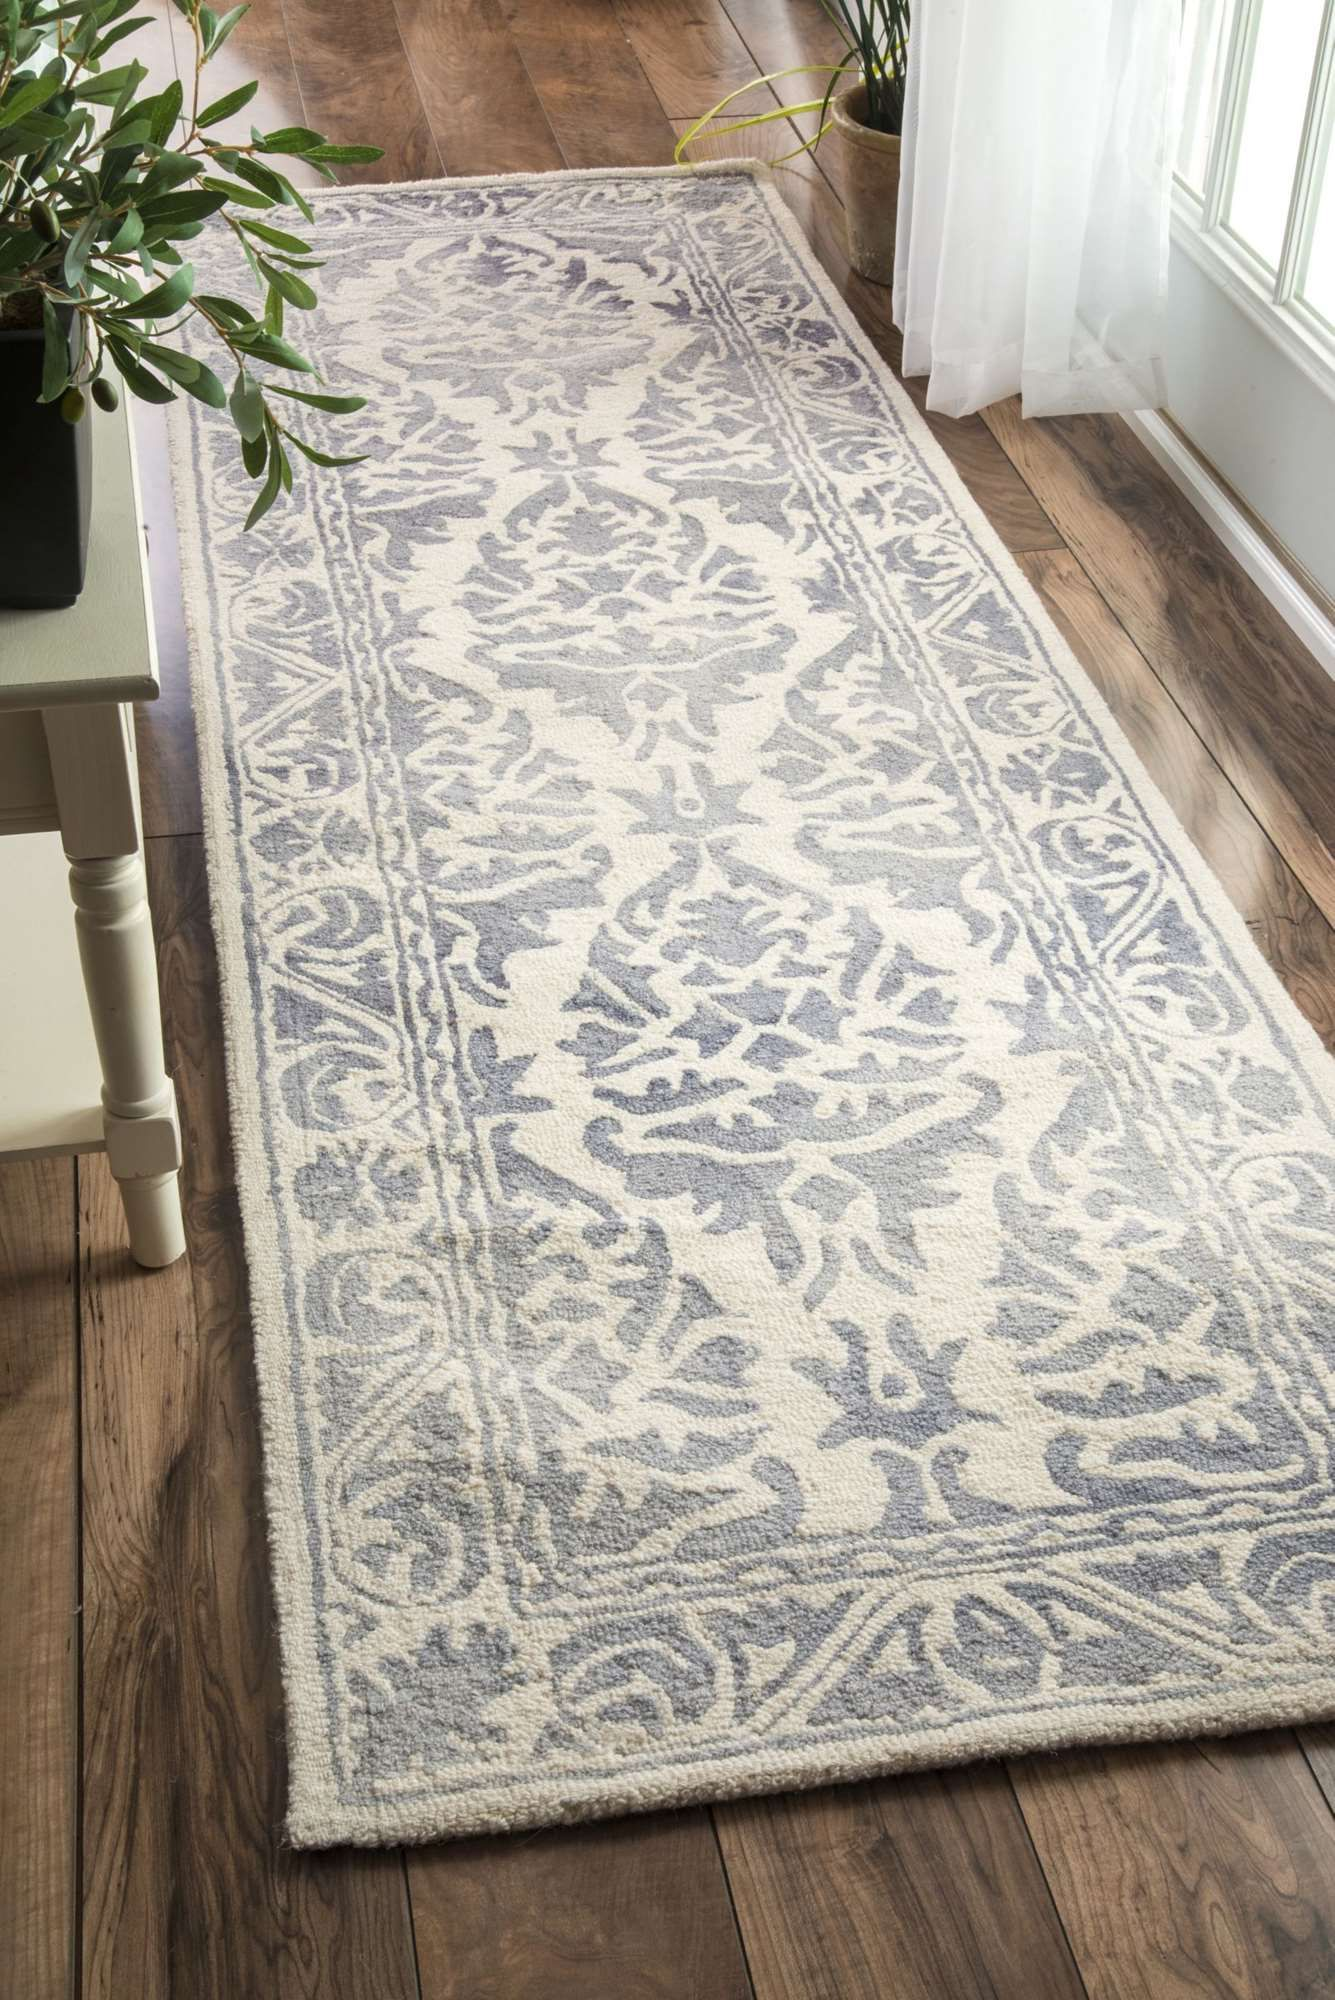 Suitable For High Traffic Areas The Dip Dyed Damask Border Rug Adds